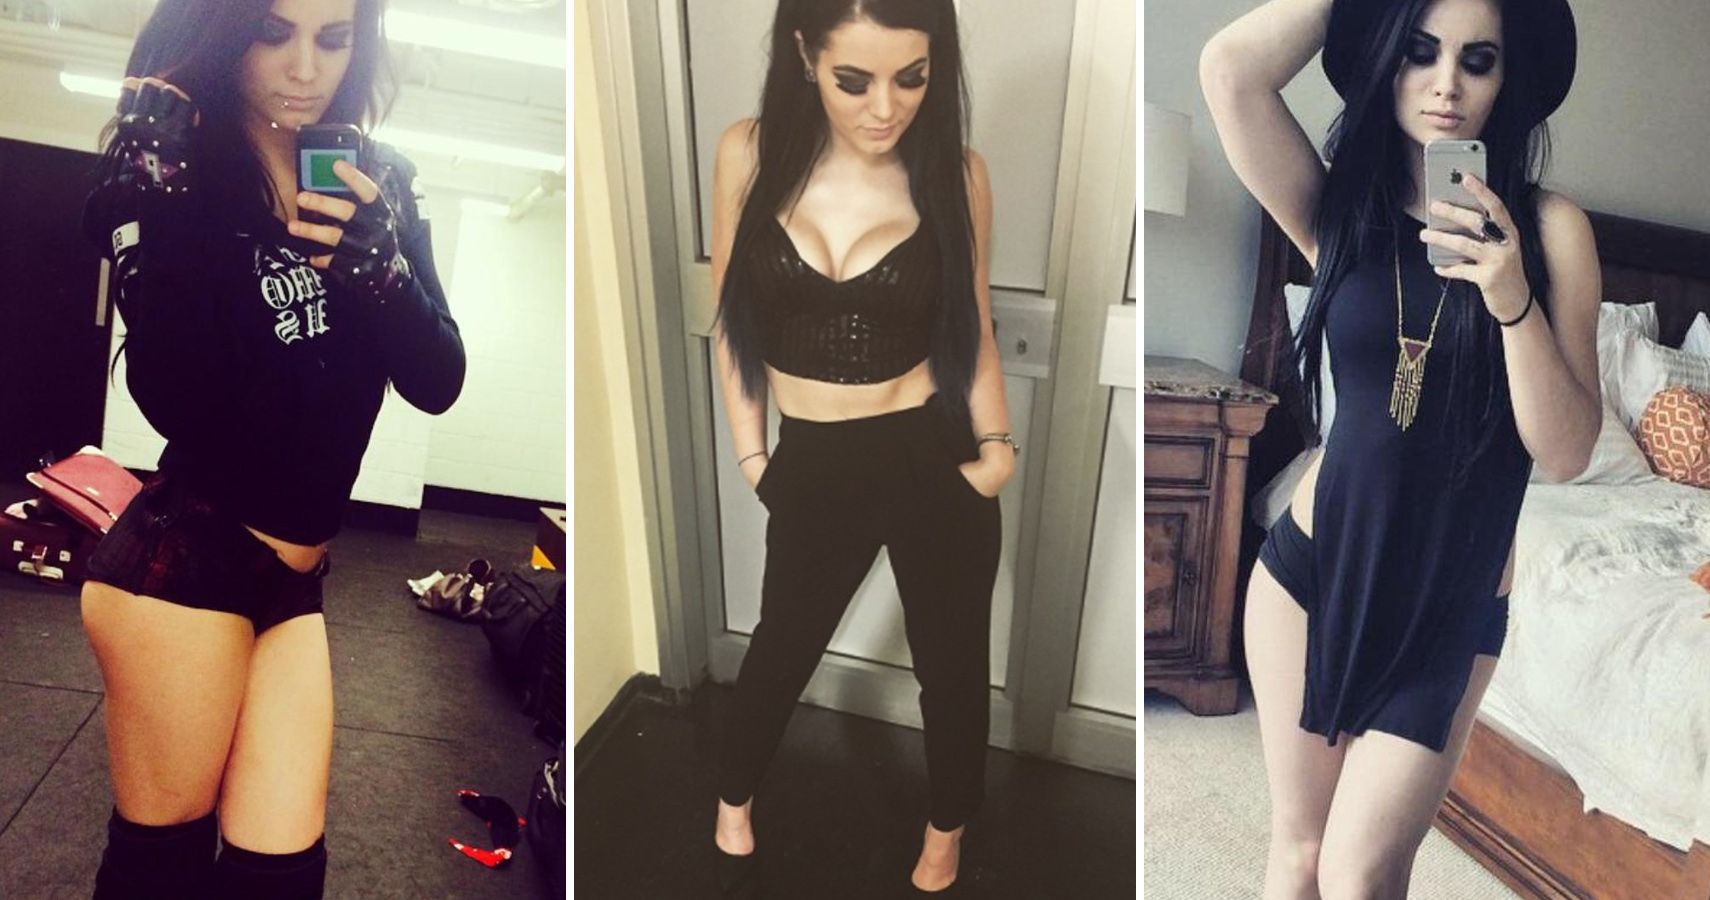 Hot Pictures Of Paige That Will Have You Wishing For -9857